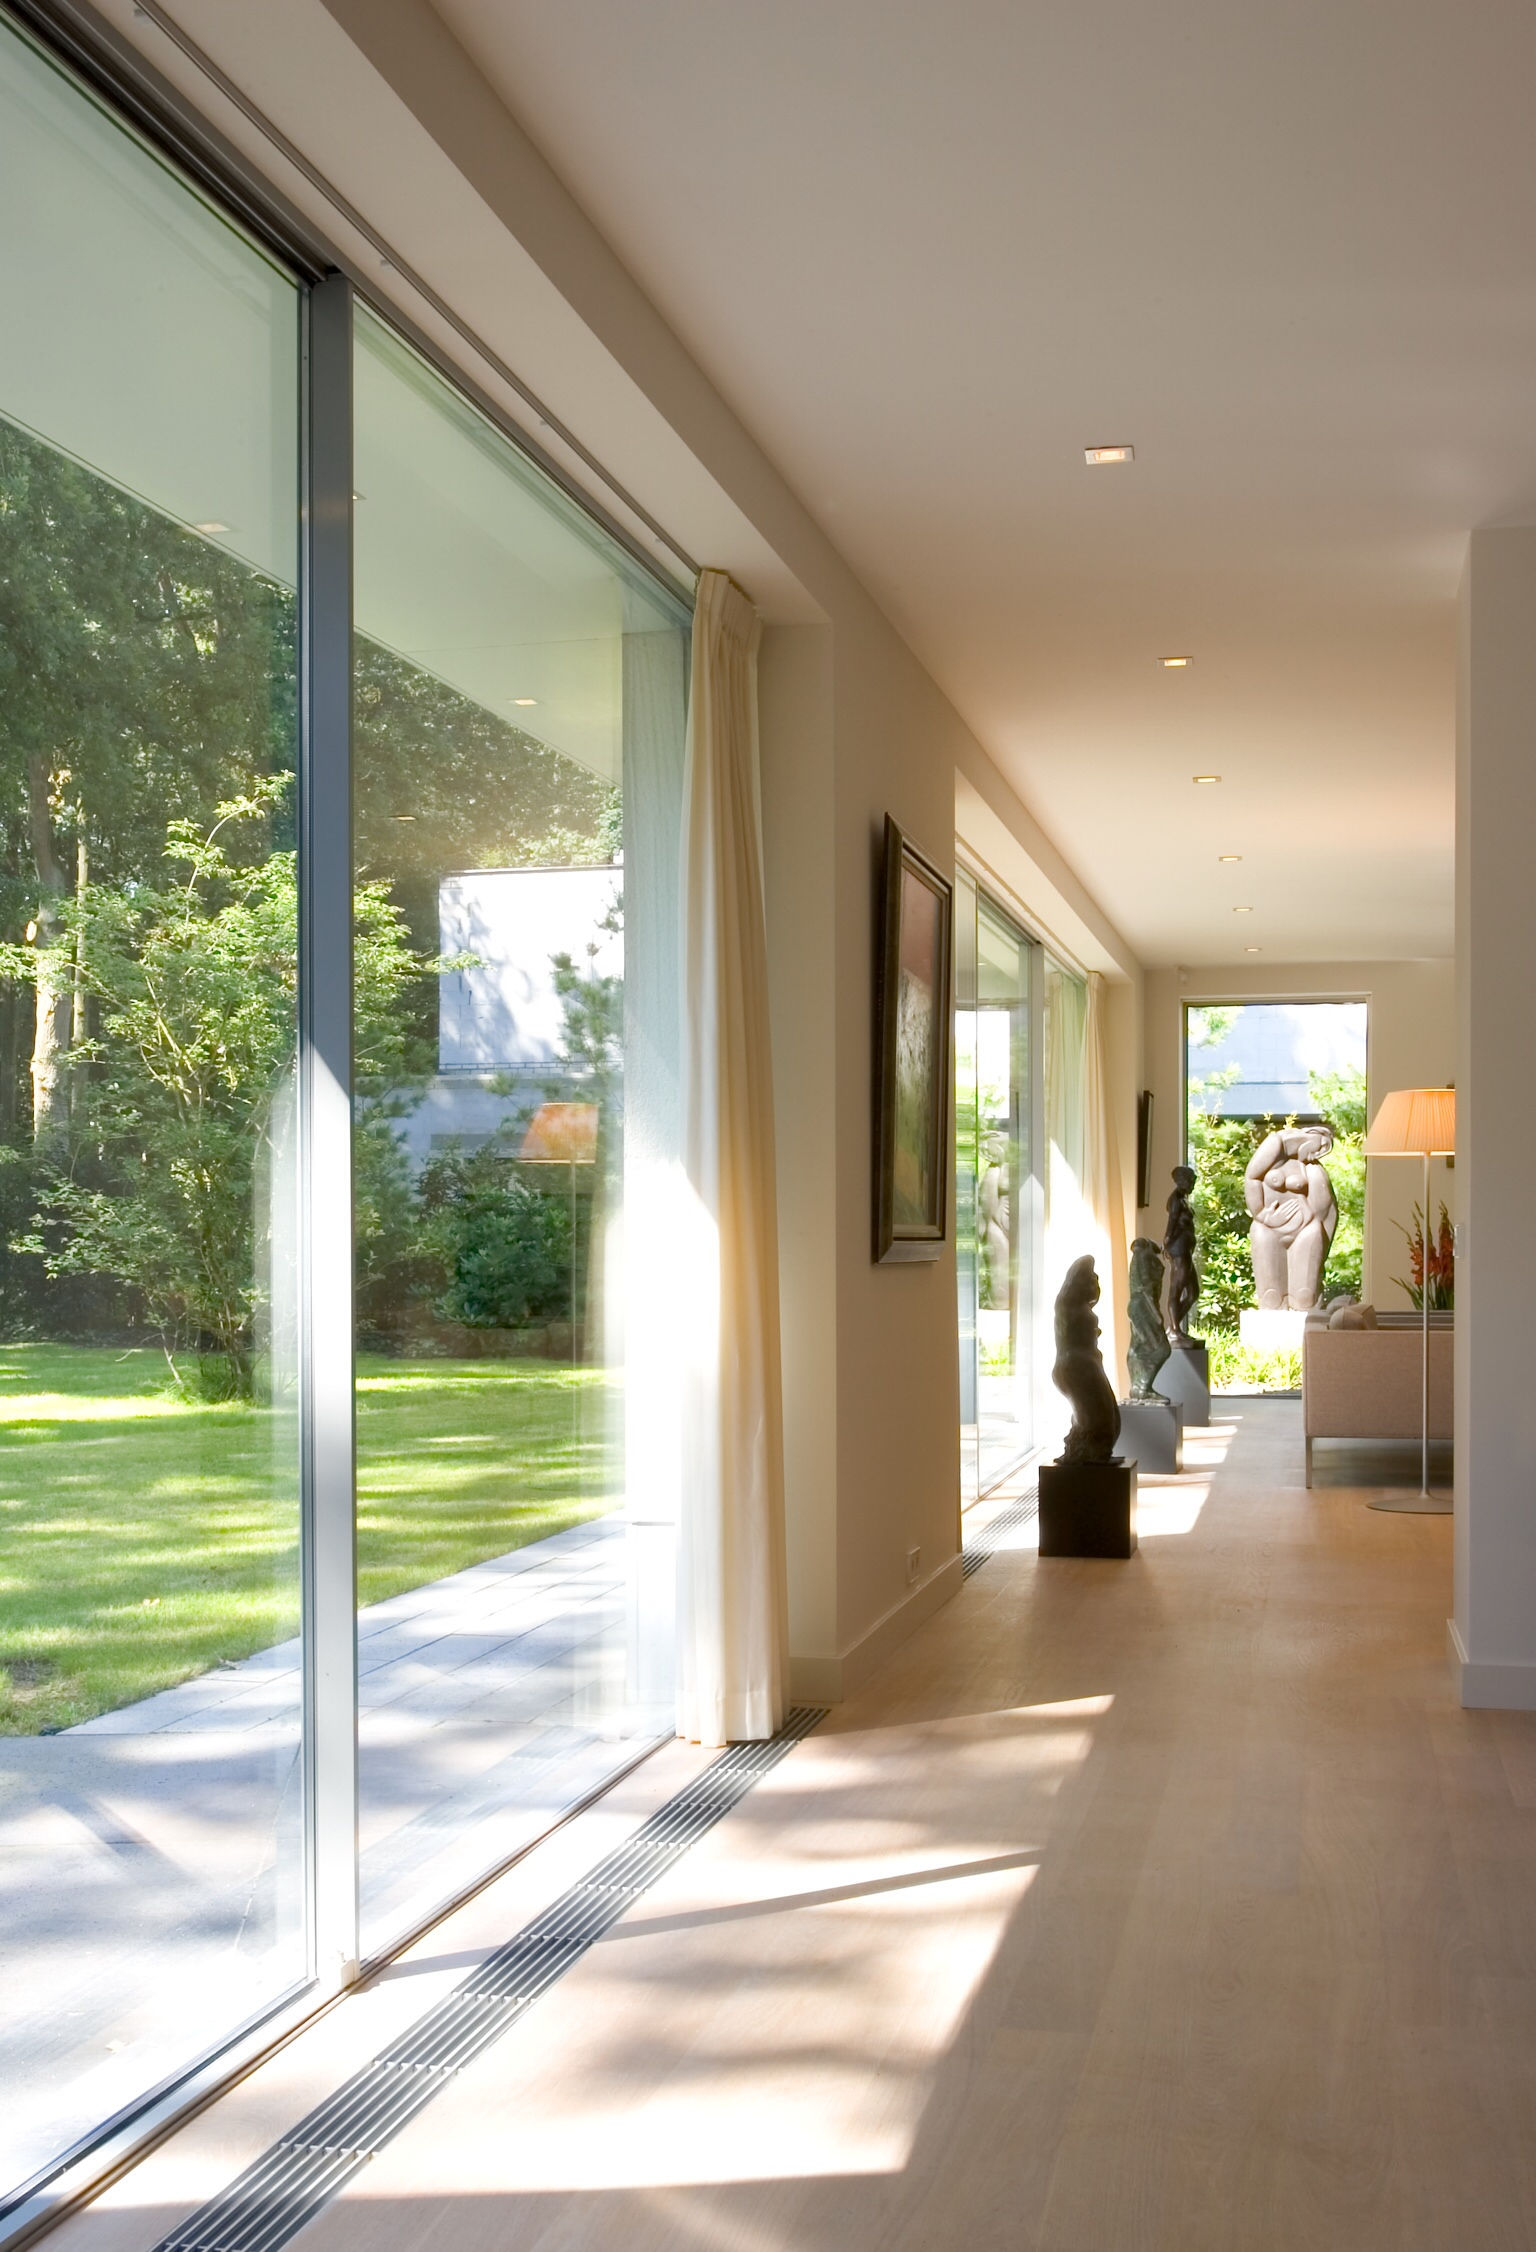 6-white-house-green-garden-ultra-slim-sliding-glass-doors